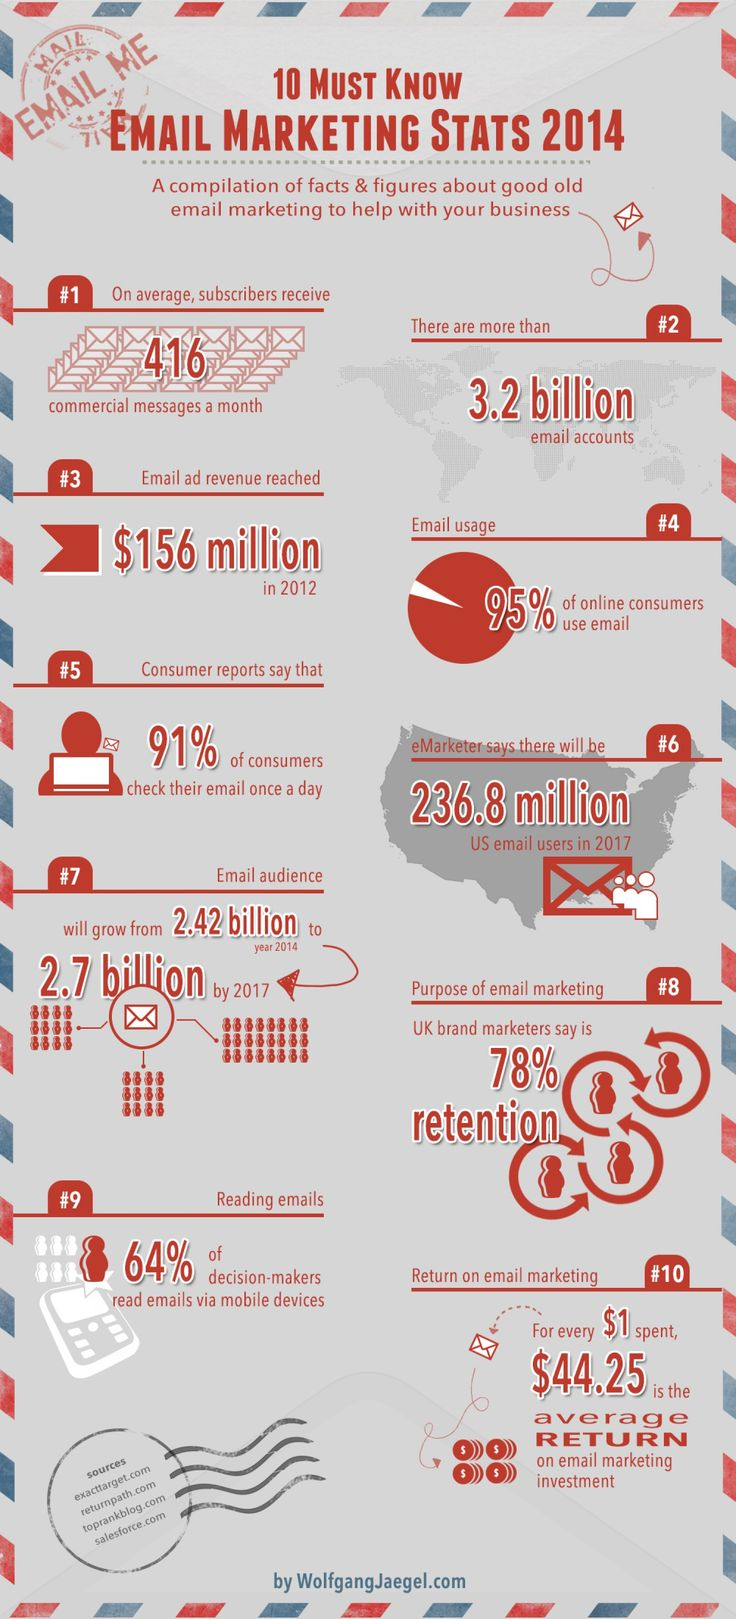 10 Must-know Email Marketing Stats for 2014 http://emailexpert.org/infographic-10-must-know-email-marketing-stats-2014/